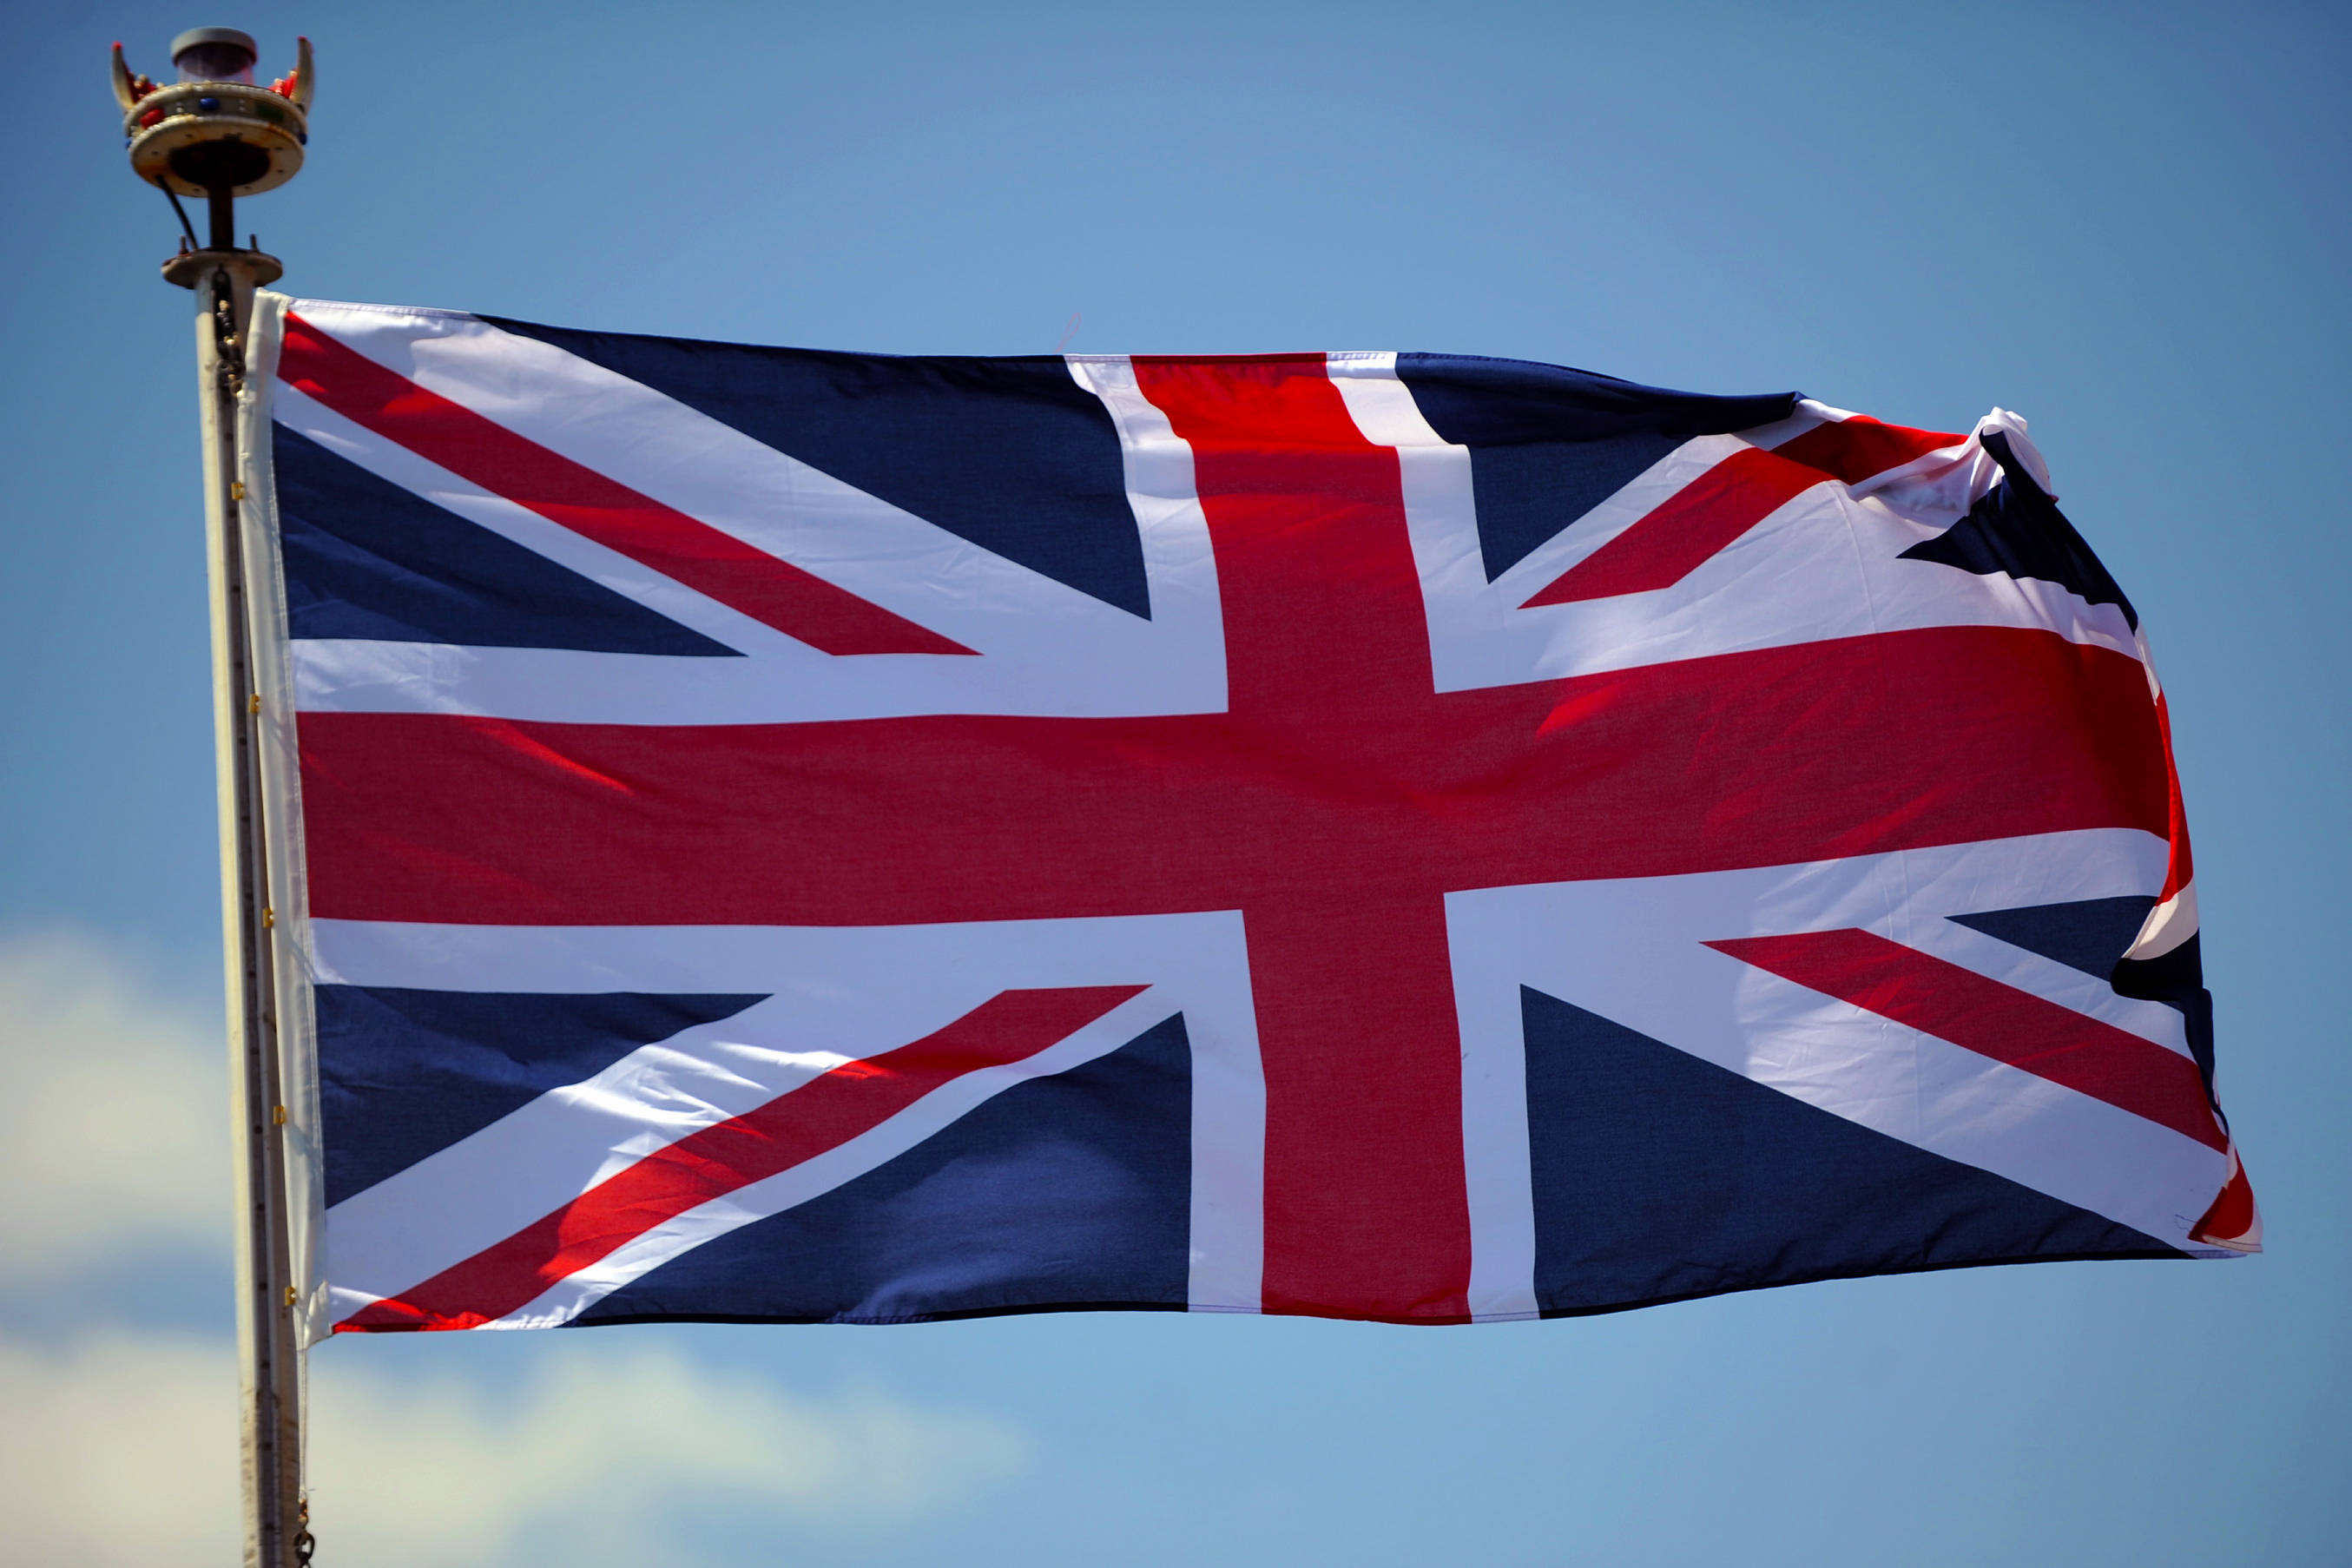 The_Union_Jack_Flag_MOD_45153521.jpg